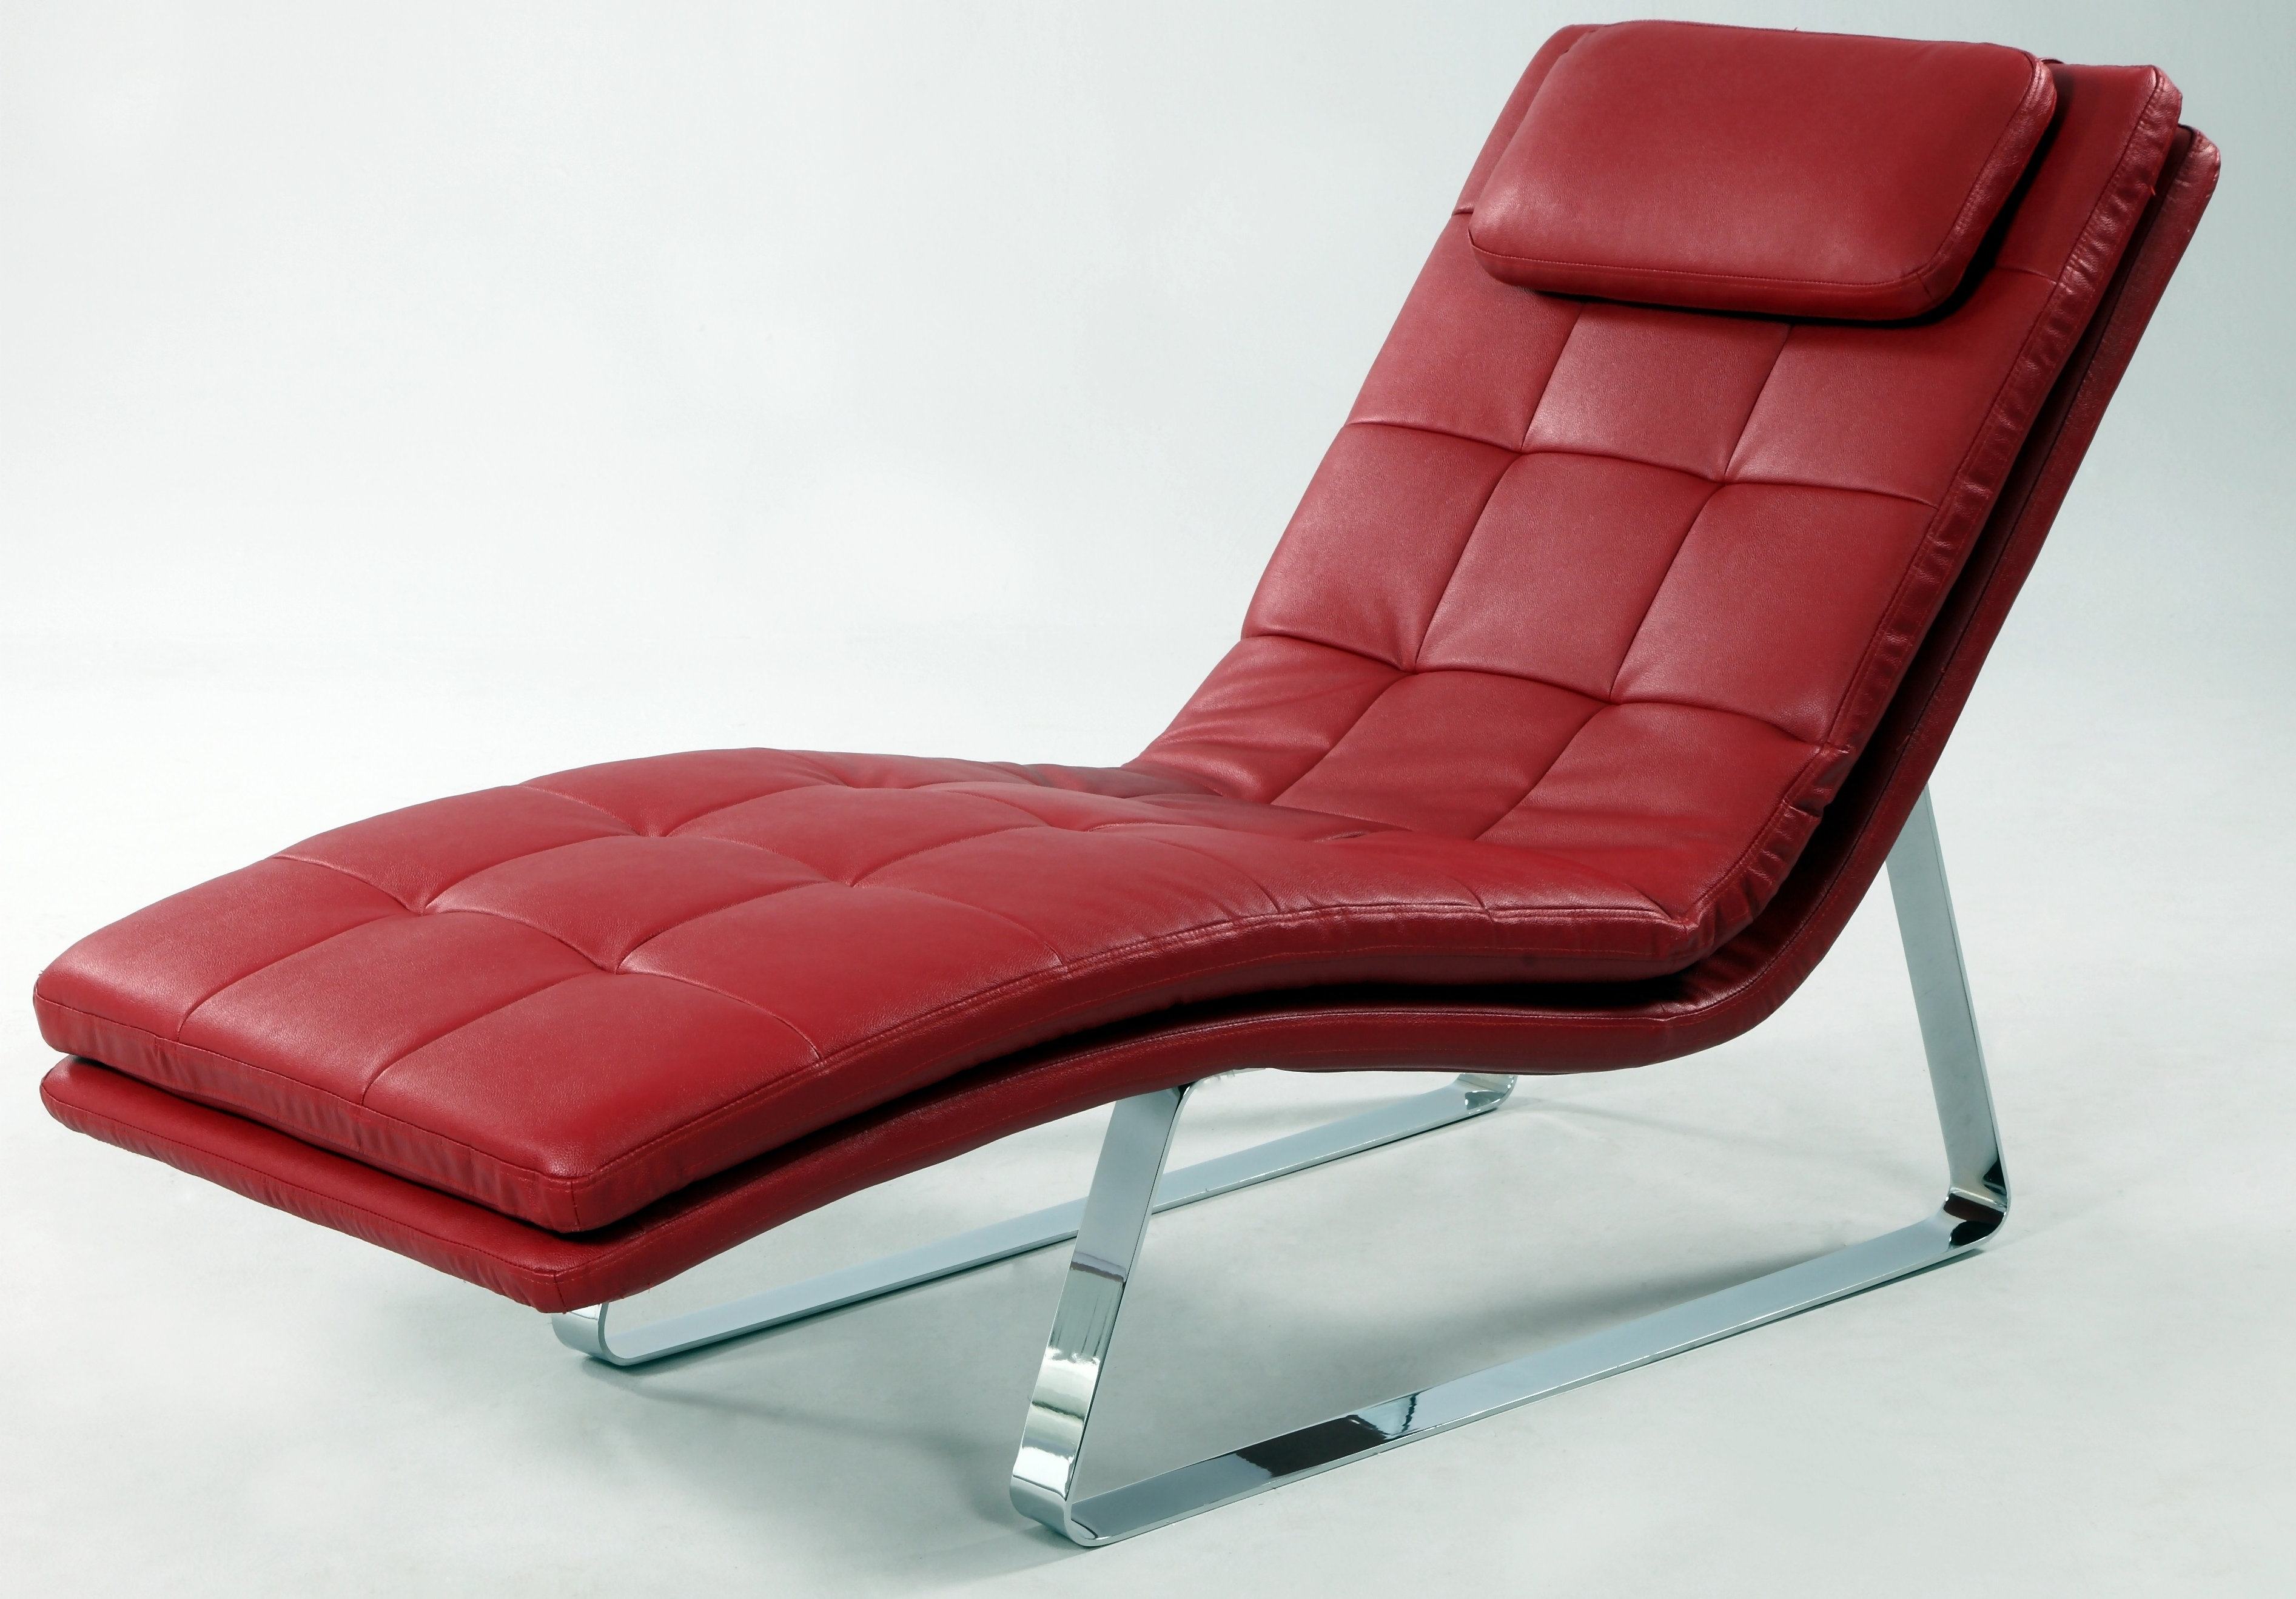 Favorite Full Bonded Leather Tufted Chaise Lounge With Chrome Legs New York Within Red Leather Chaises (View 6 of 15)